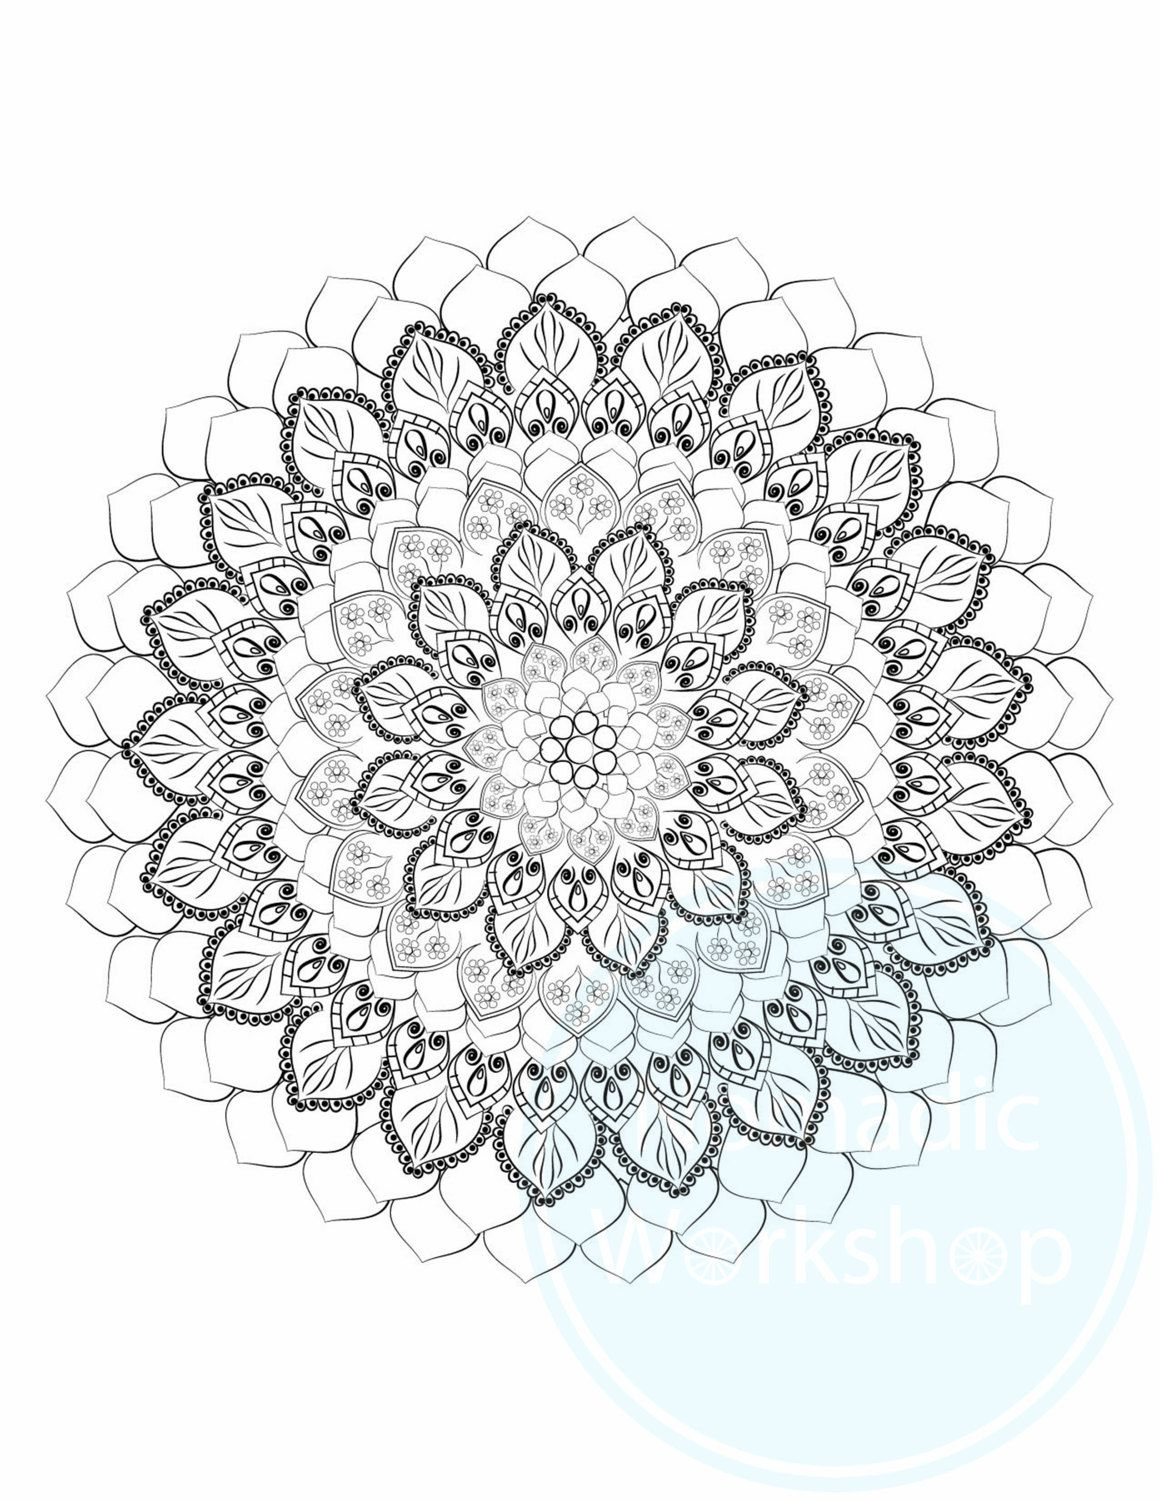 mandala 1 free coloring page coloring page for adults coloring